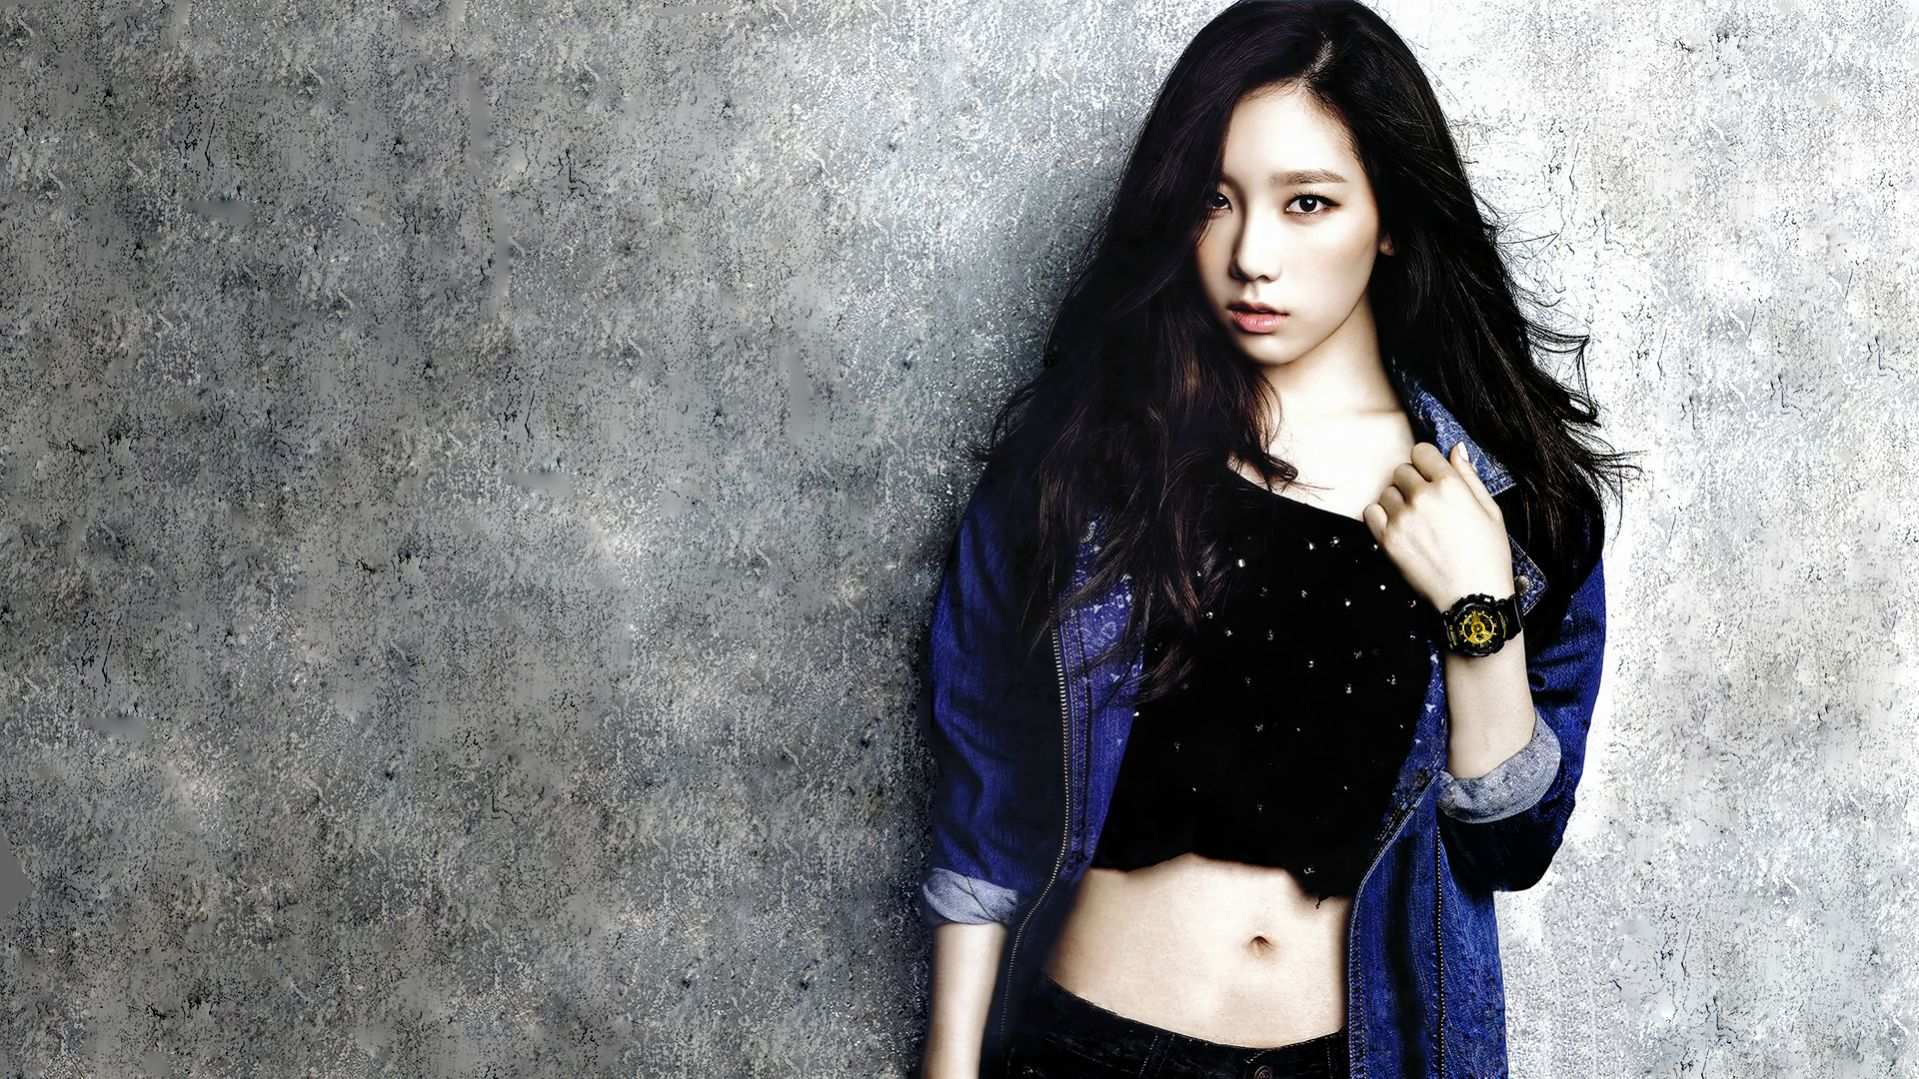 Taeyeon Wallpapers Taeyeon Backgrounds and Images 38 1919x1079